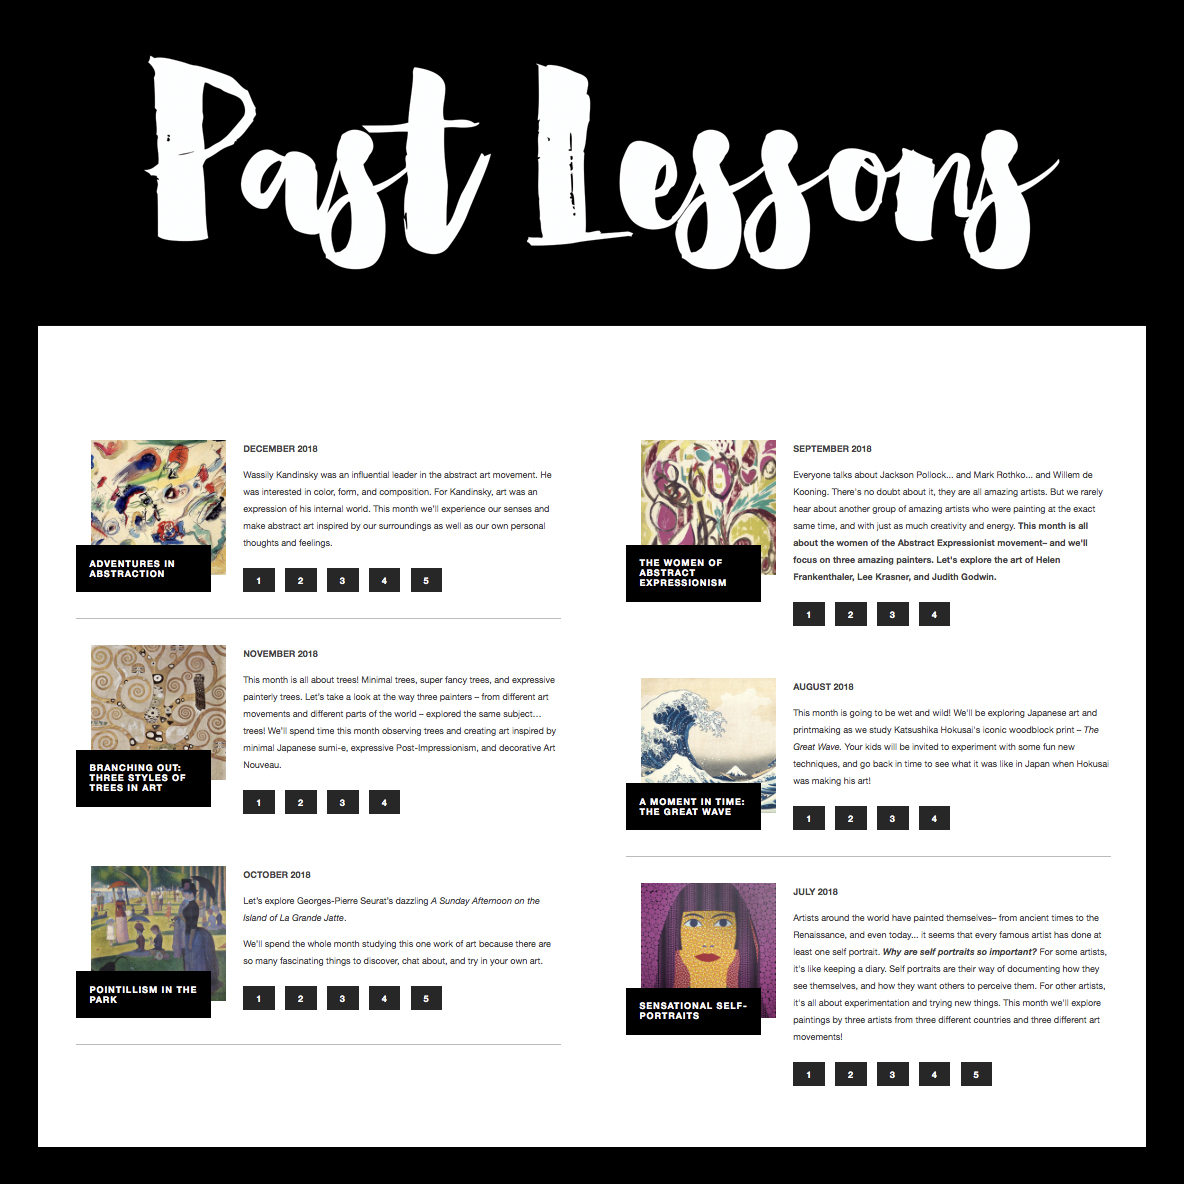 Previous lessons from the past six months! -